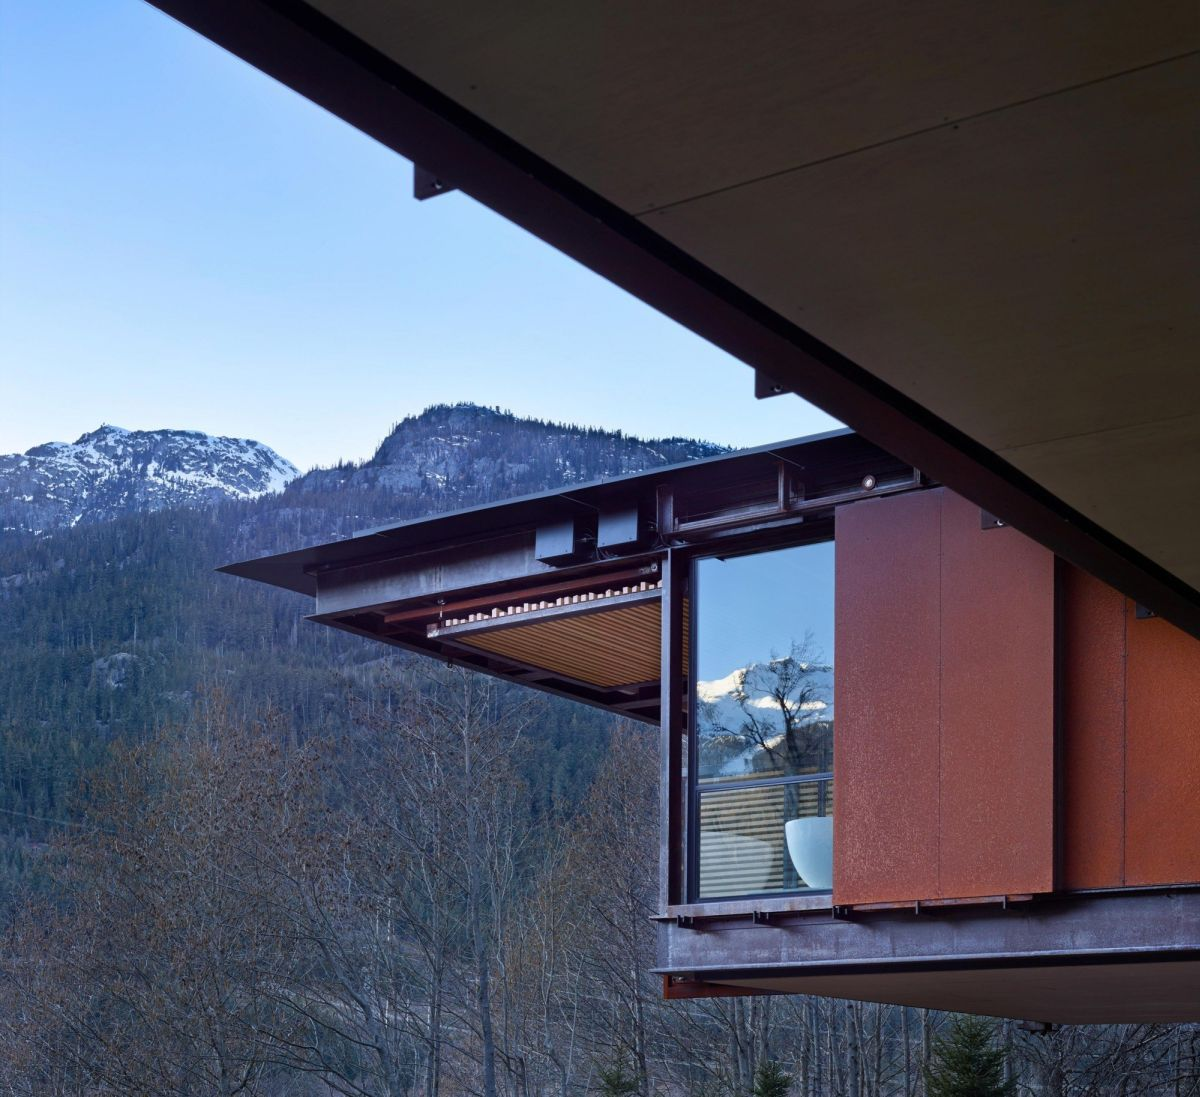 Large windows offer views of the surrounding mountains.